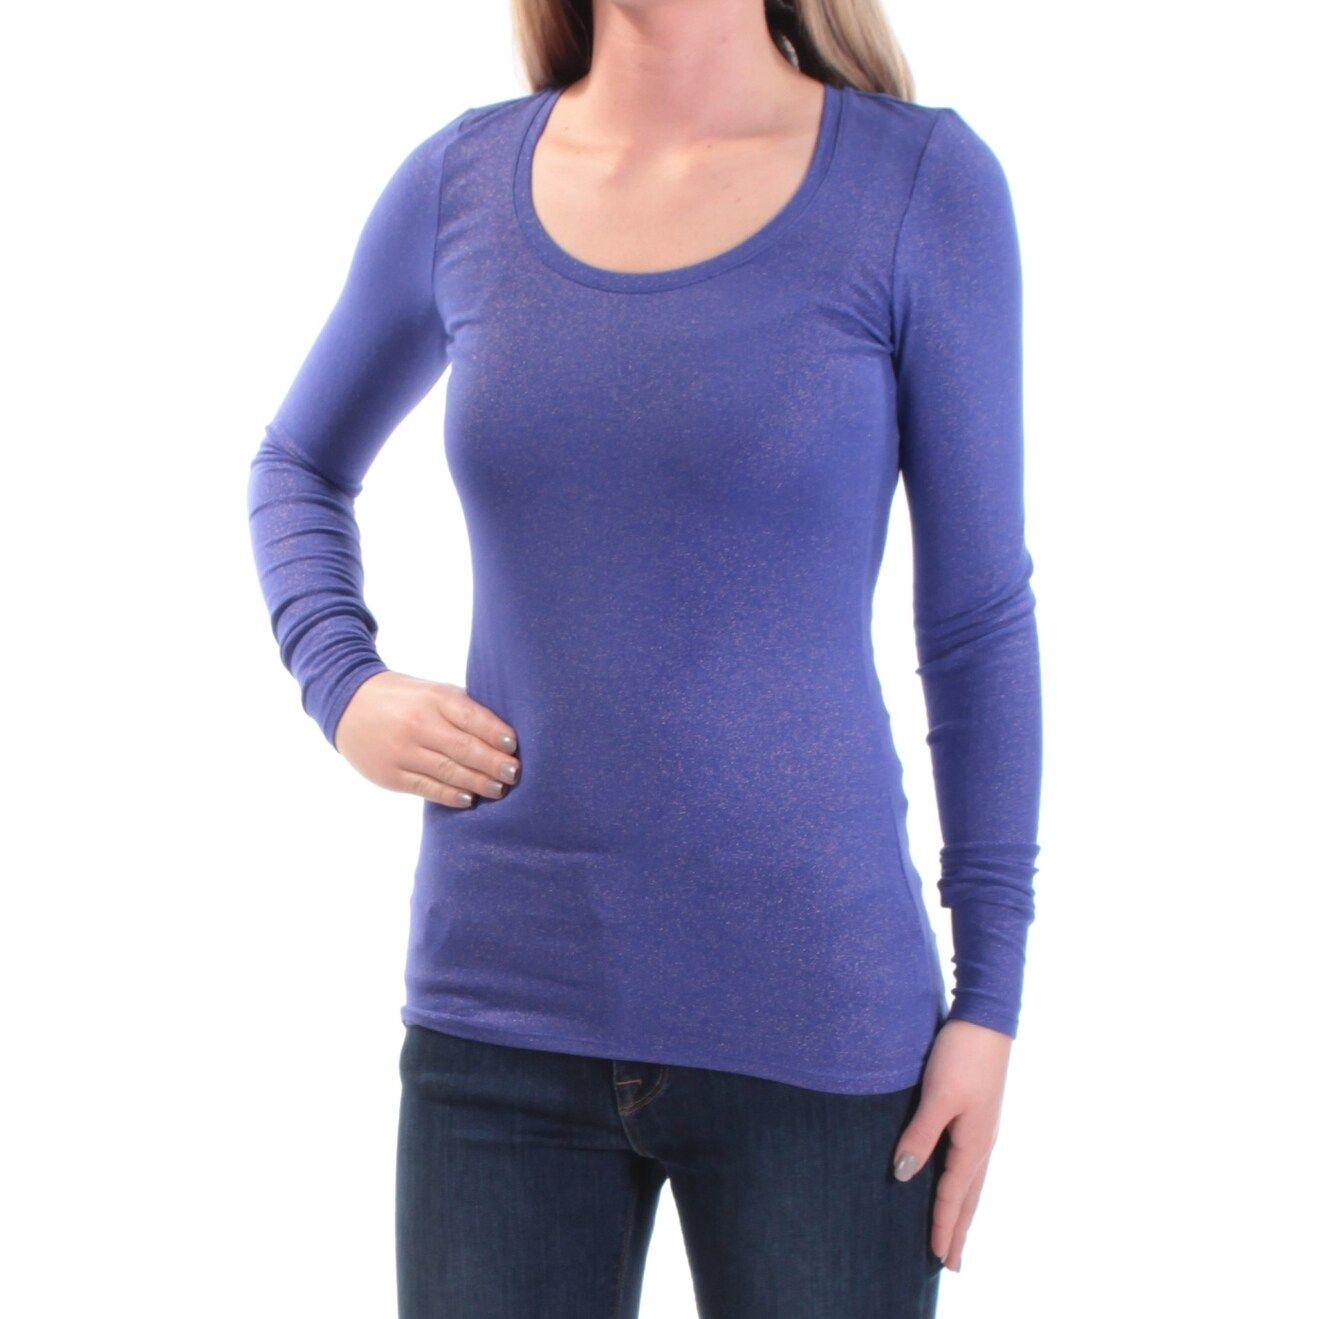 Xs Long Womens Purple Long Sleeve Scoop Neck Casual Top Size Xs